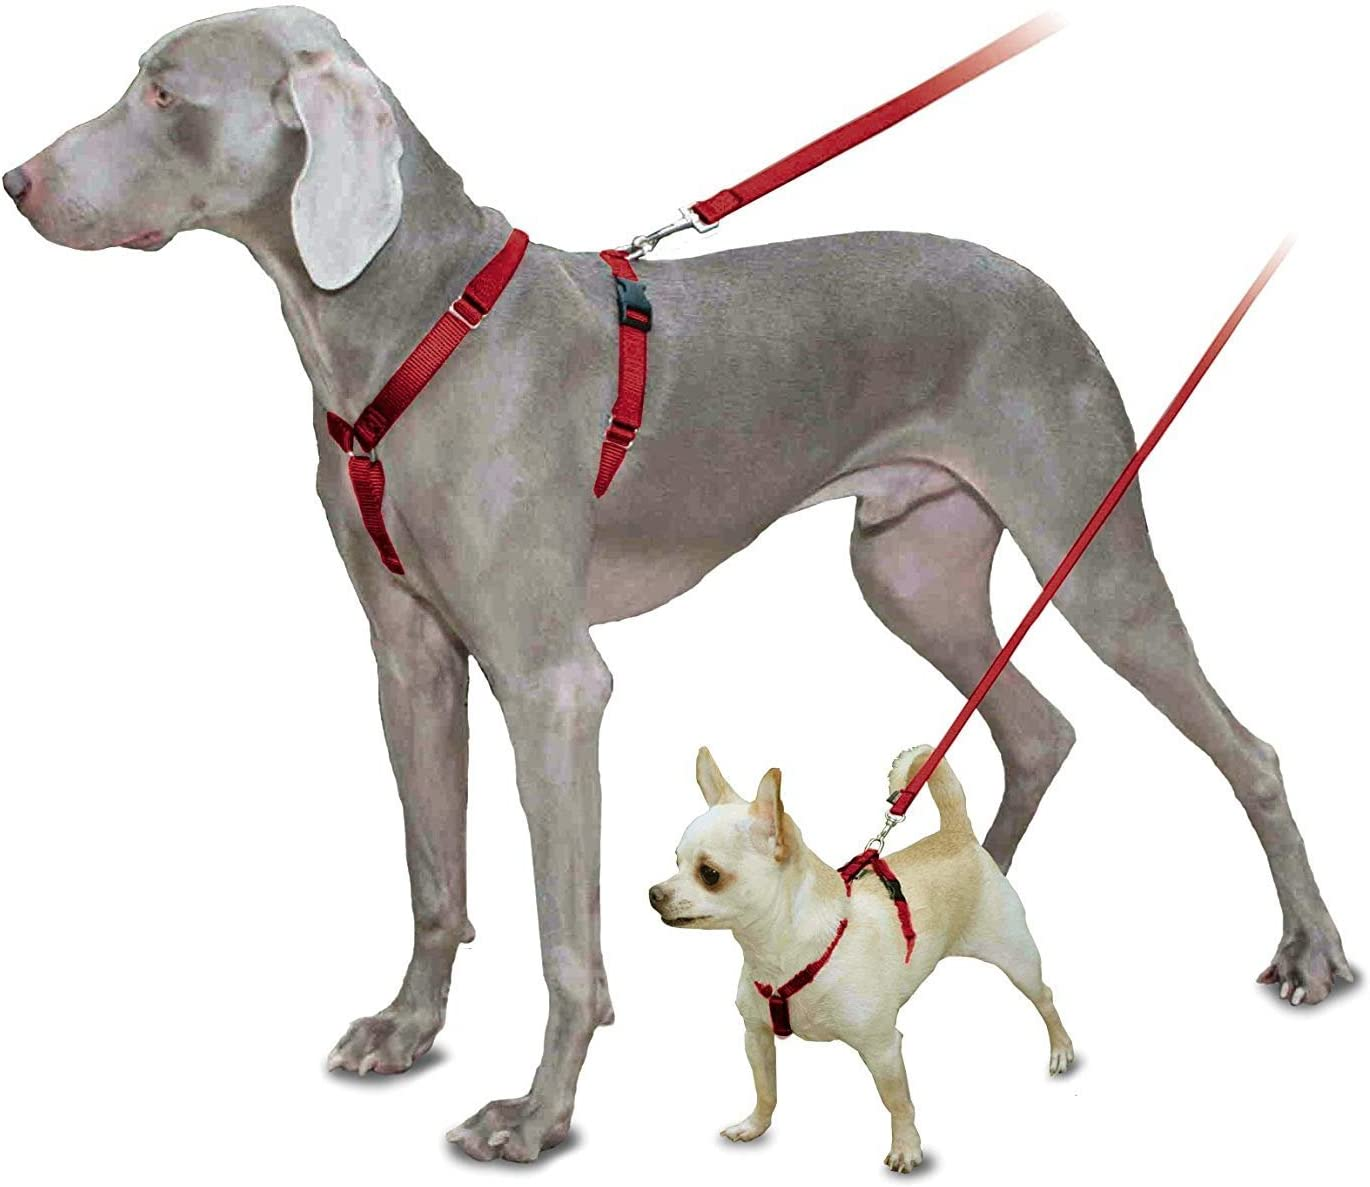 Max 84% OFF PetSafe Sure-Fit Harness Adjustable the Dog from Makers Discount mail order